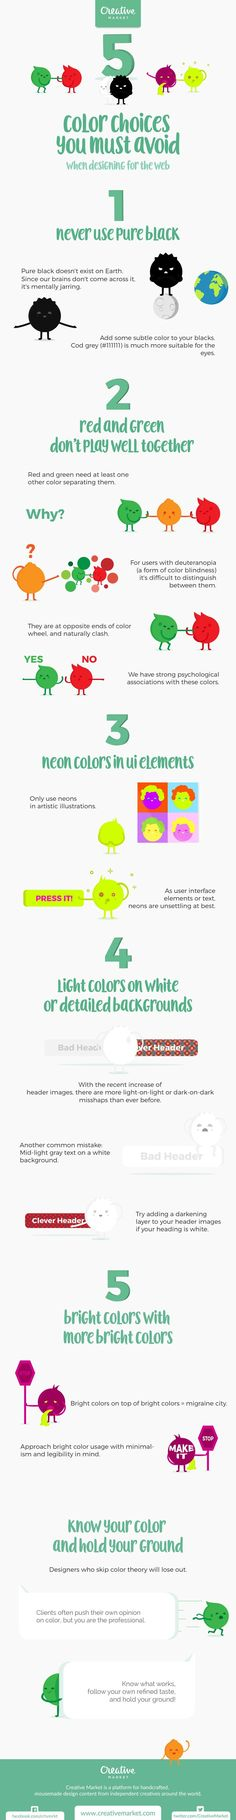 5 Color Choices That Could Ruin Your Website [Infographic] | Social Media Today